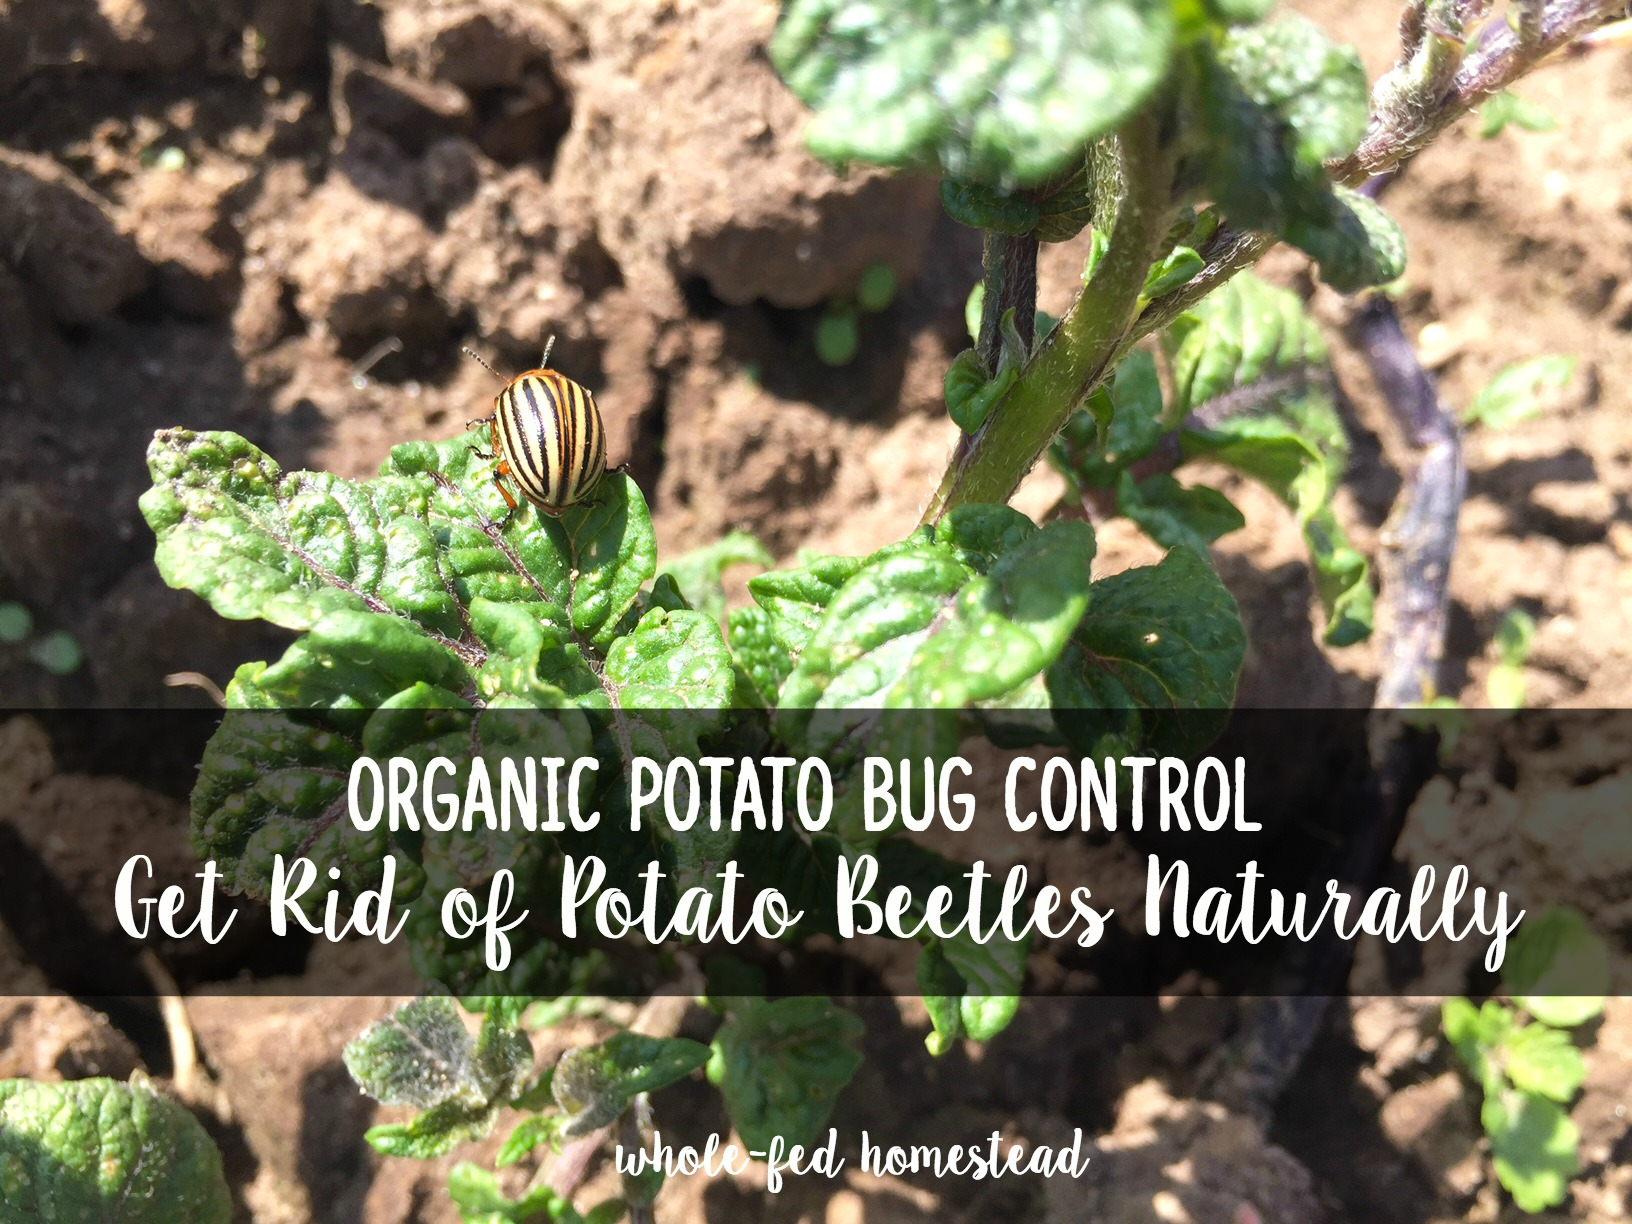 how to get rid of grain beetles naturally